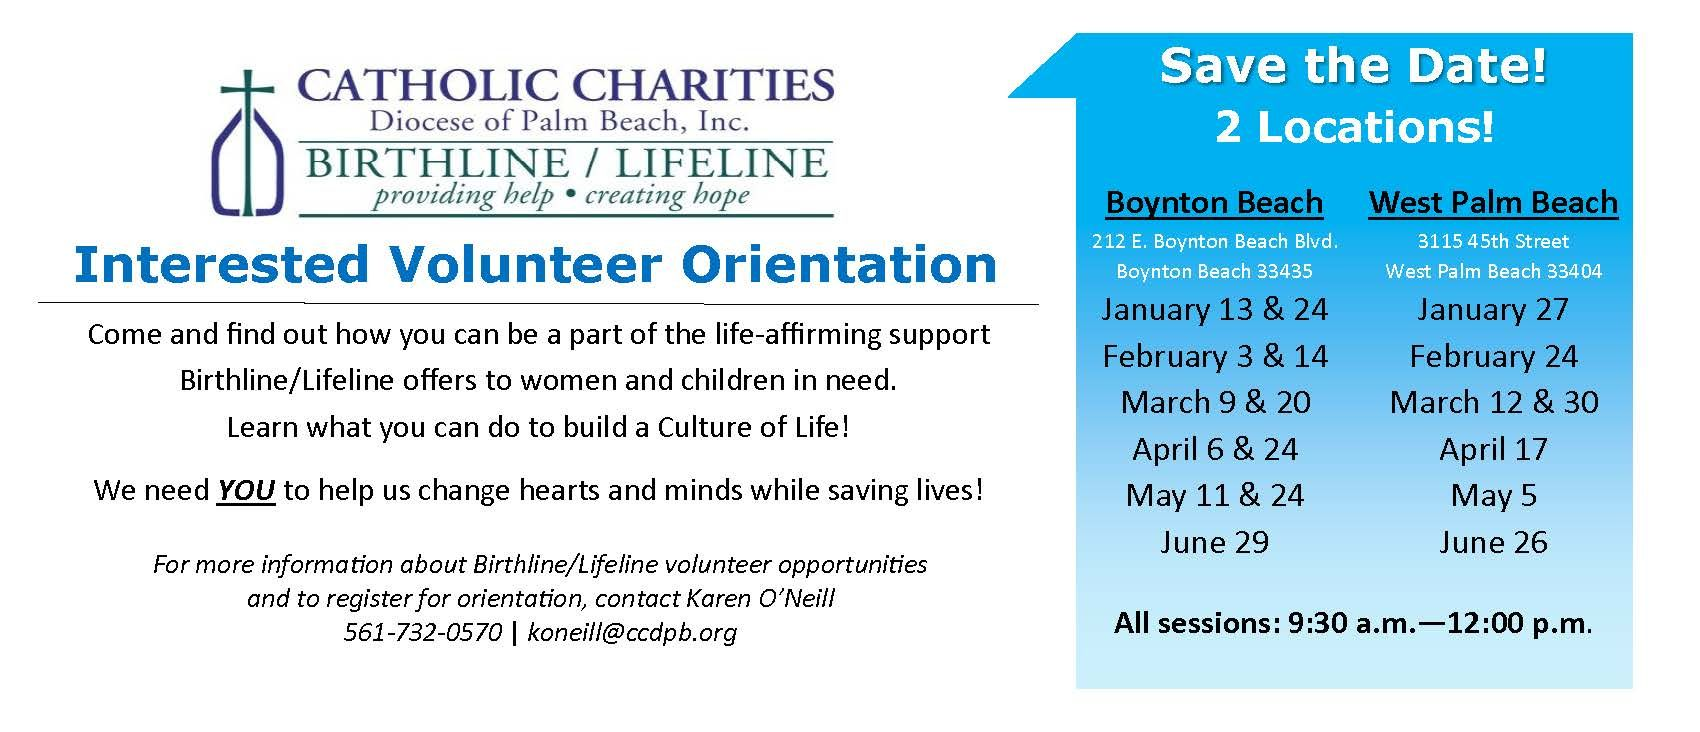 Birthline/Lifeline Volunteer Orientation - Boynton Beach